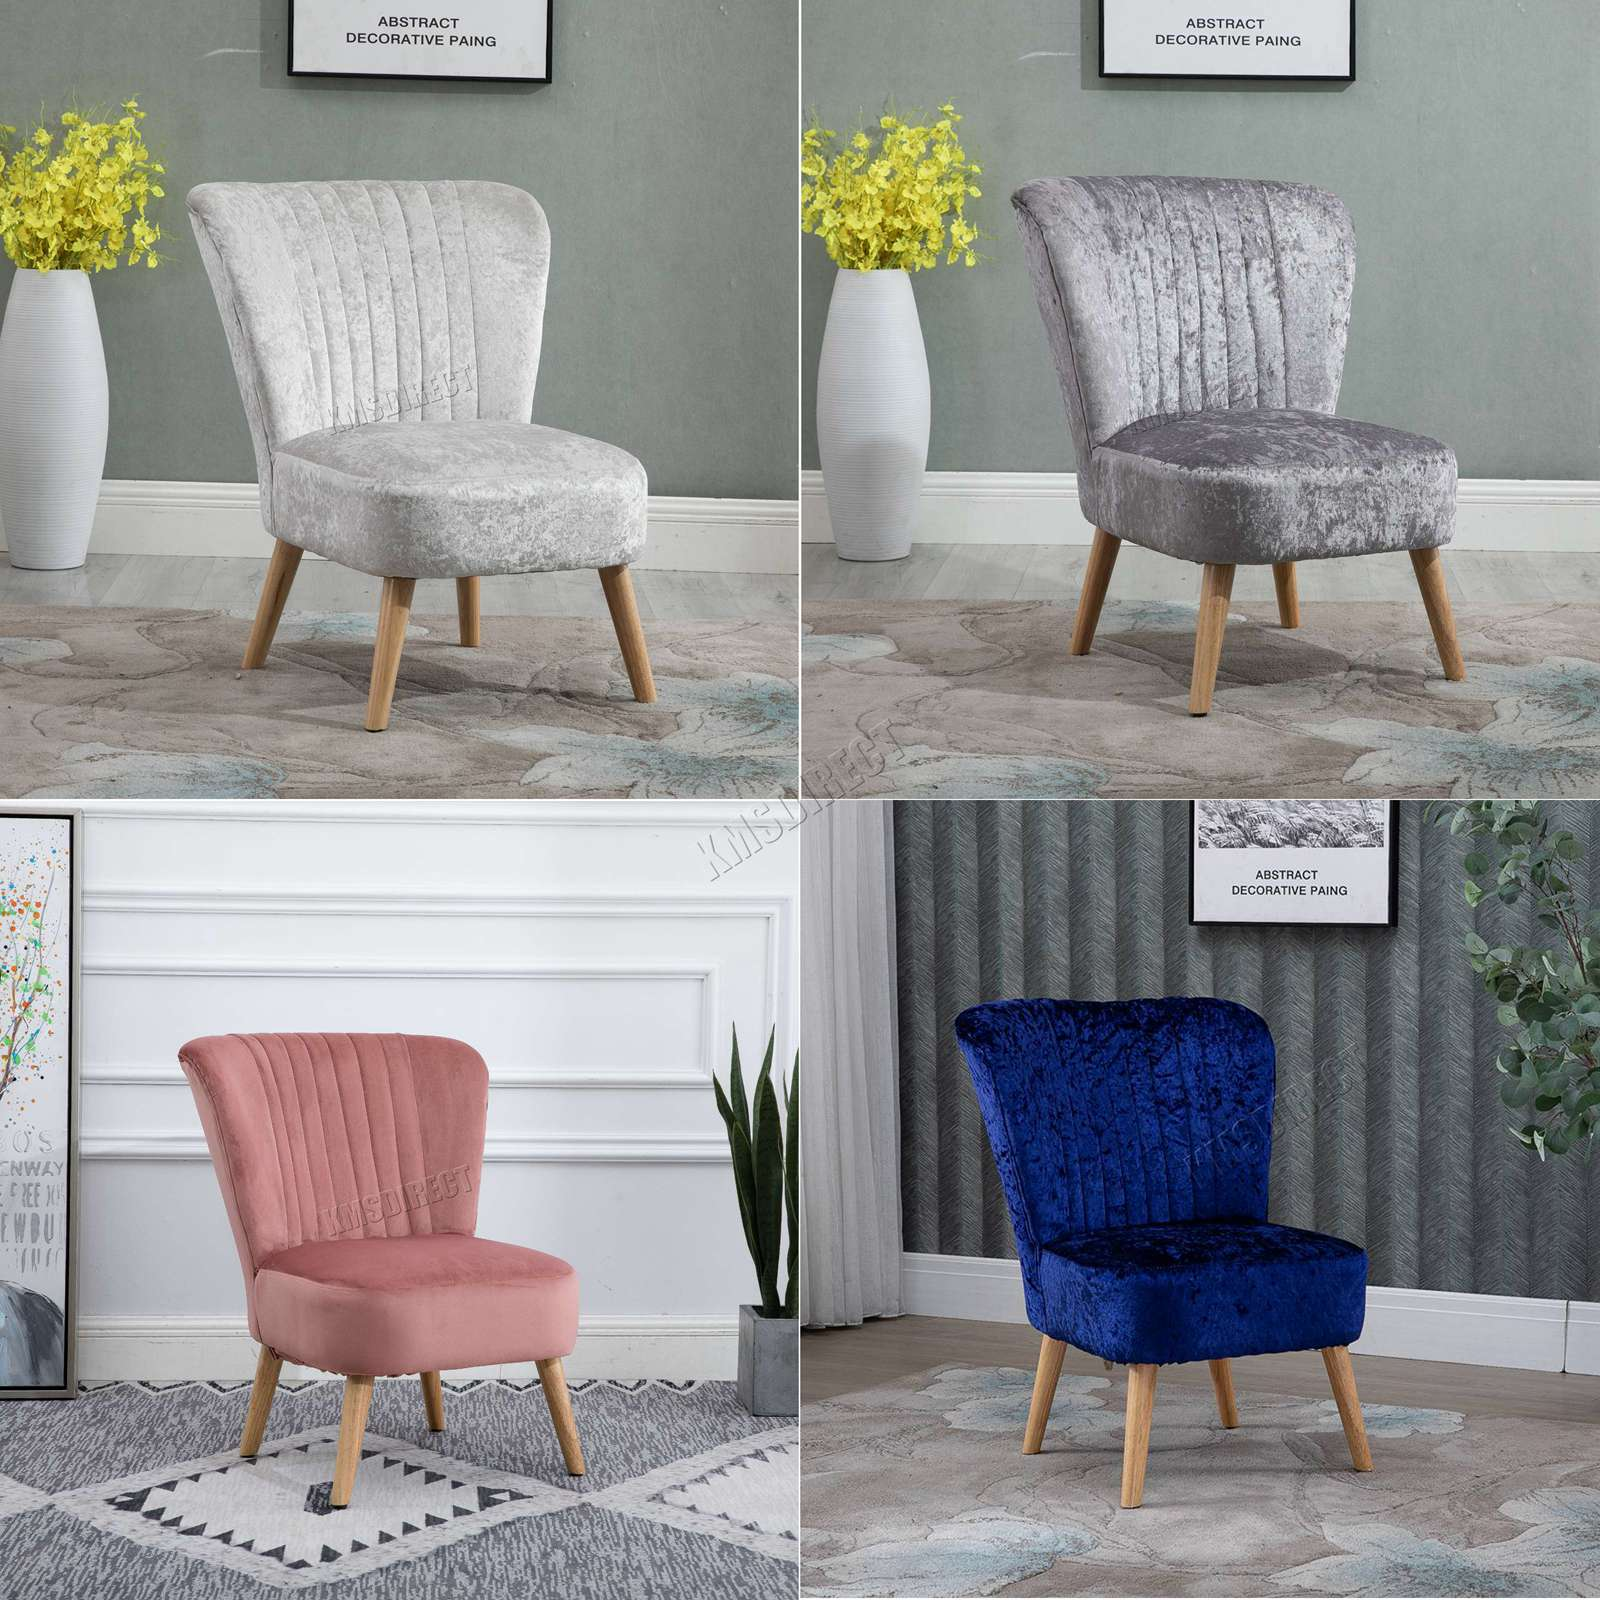 Details about WestWood Crush Velvet Fabric Accent Oyster Tub Chair Seat  Lounge Bedroom 1300